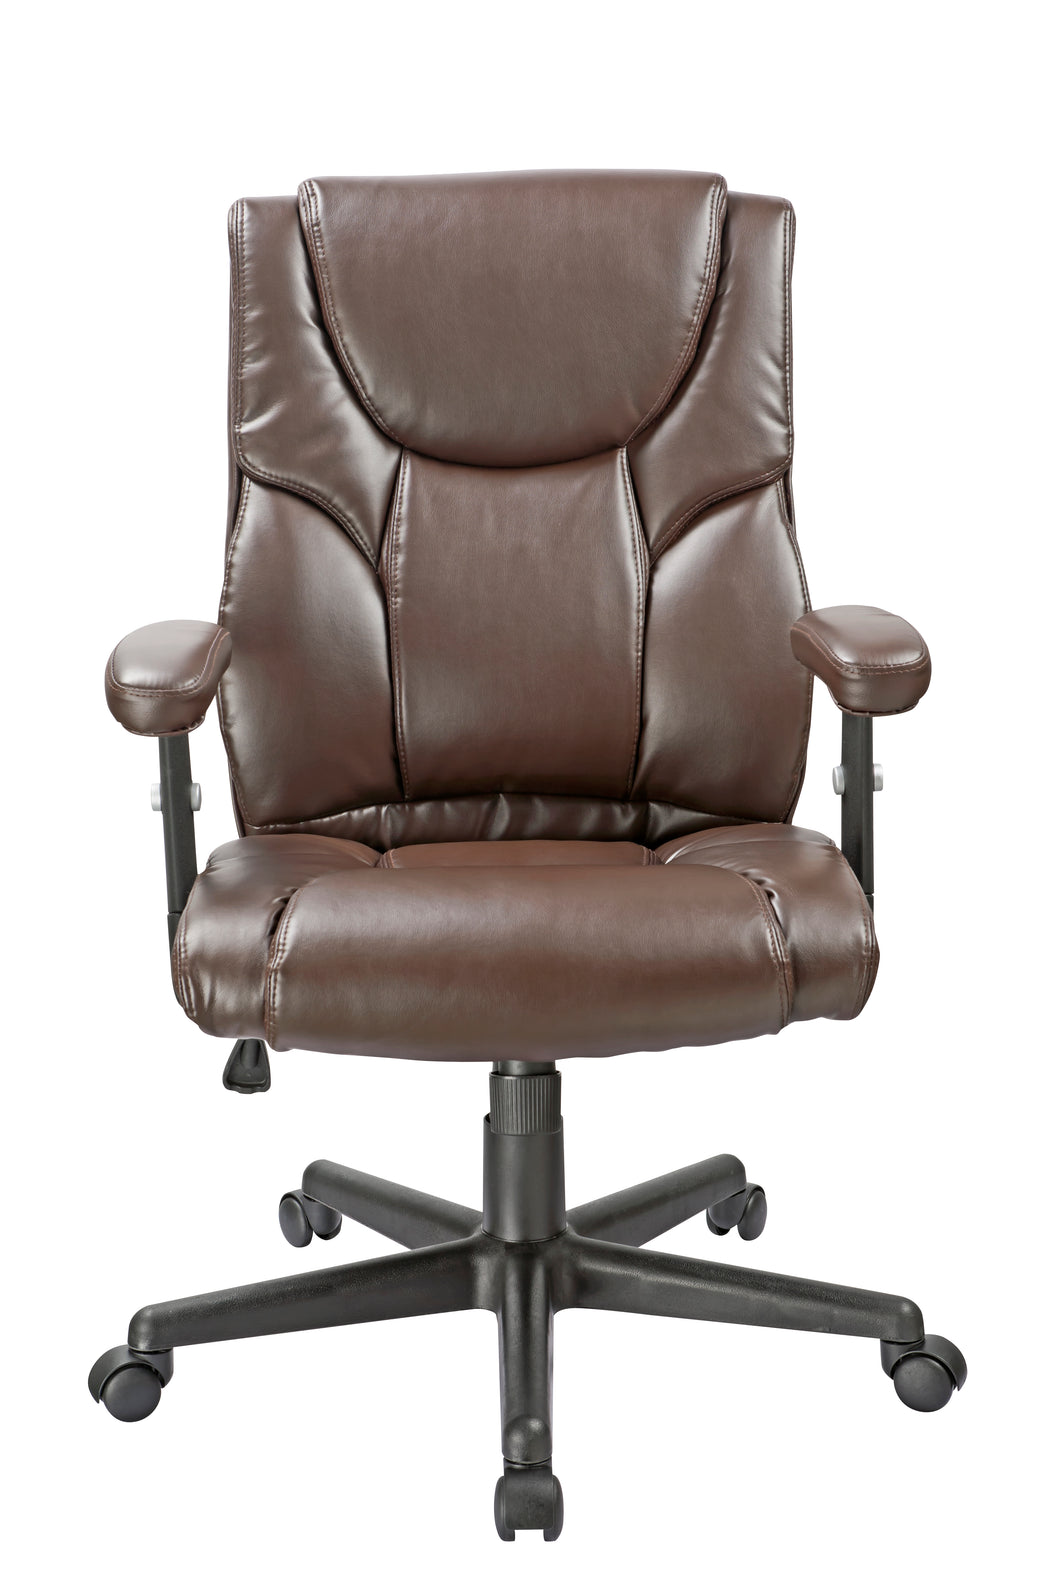 Brown Vinyl Executive Desk Chair